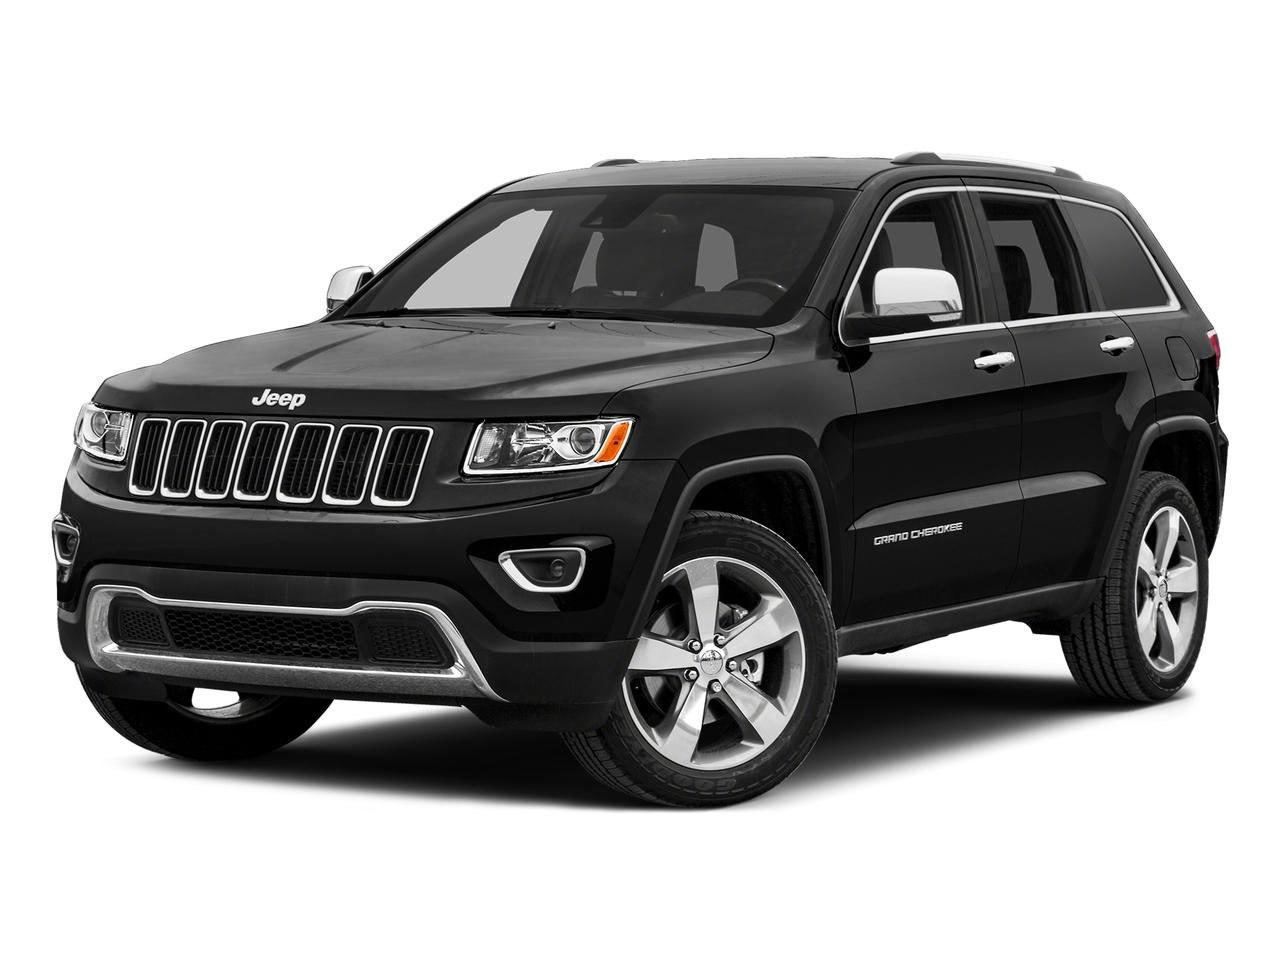 2015 Jeep Grand Cherokee Vehicle Photo in Lake Bluff, IL 60044